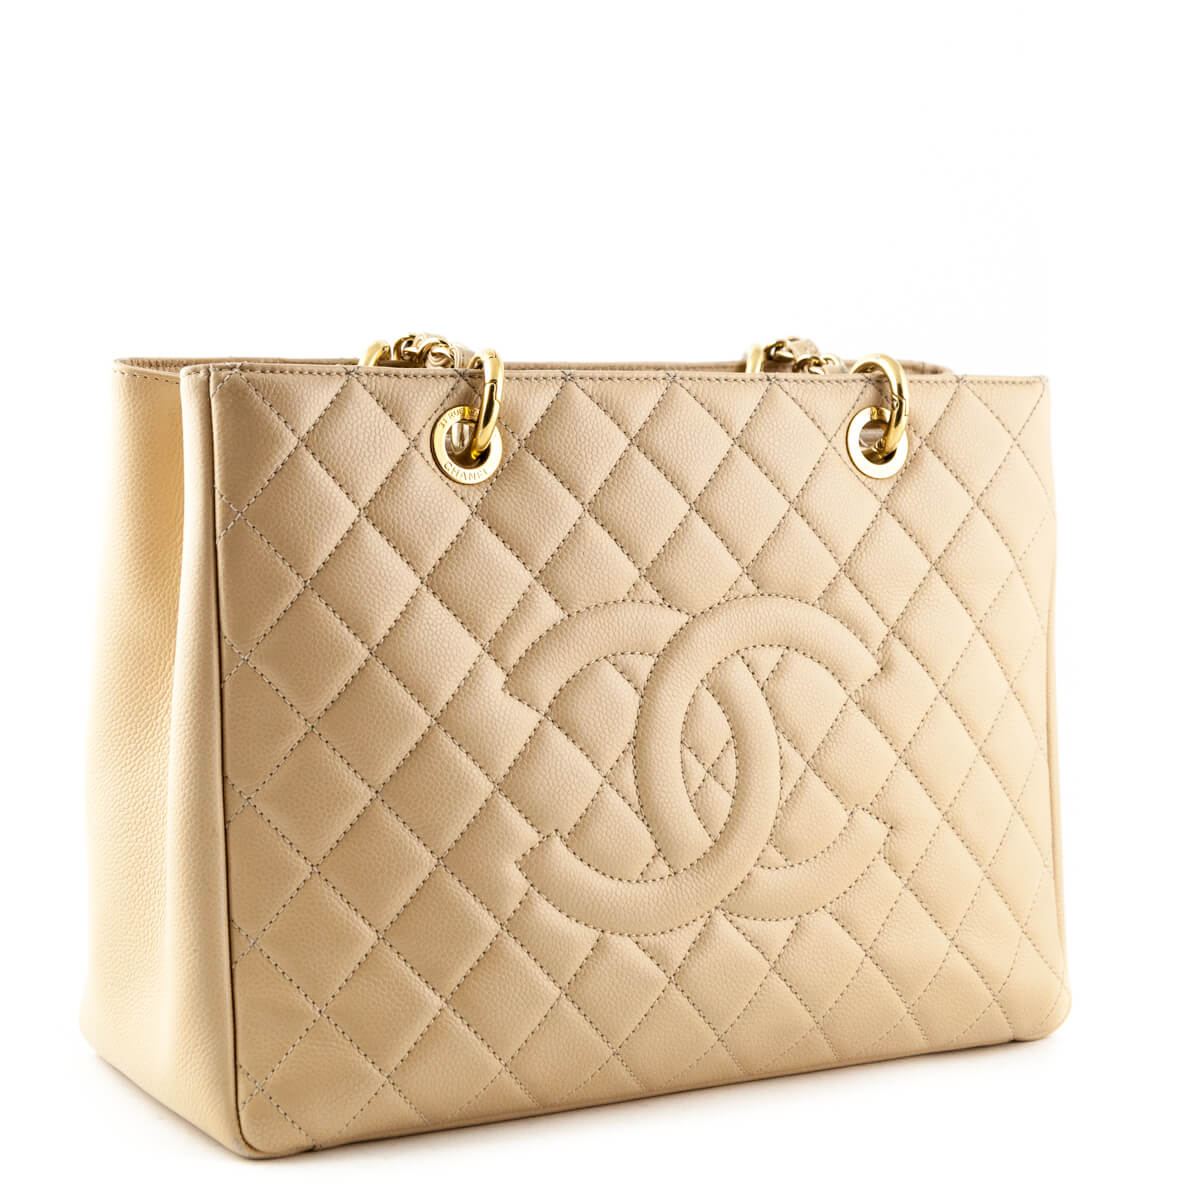 50a262bf8f1 Chanel Beige Caviar Grand Shopping Tote GHW